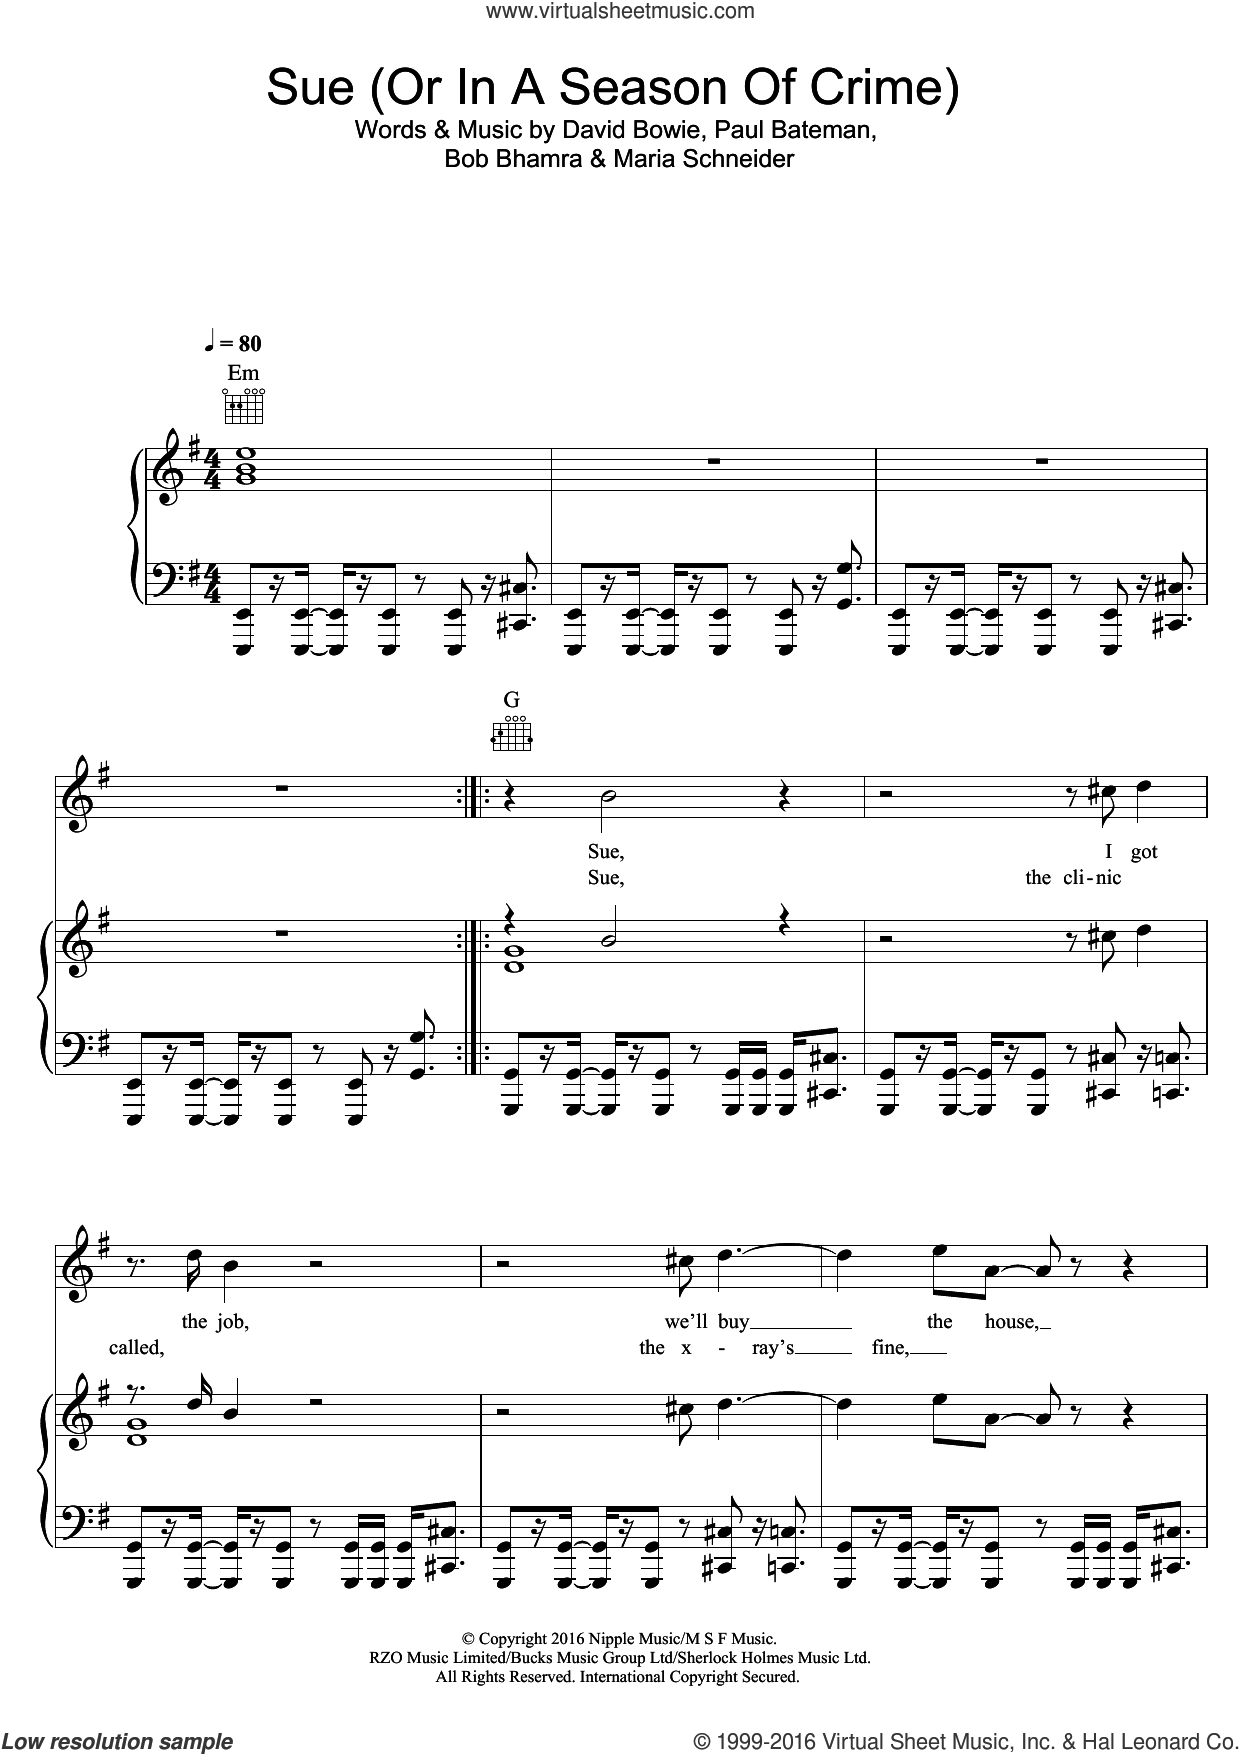 Sue (Or In A Season Of Crime) sheet music for voice, piano or guitar by David Bowie. Score Image Preview.